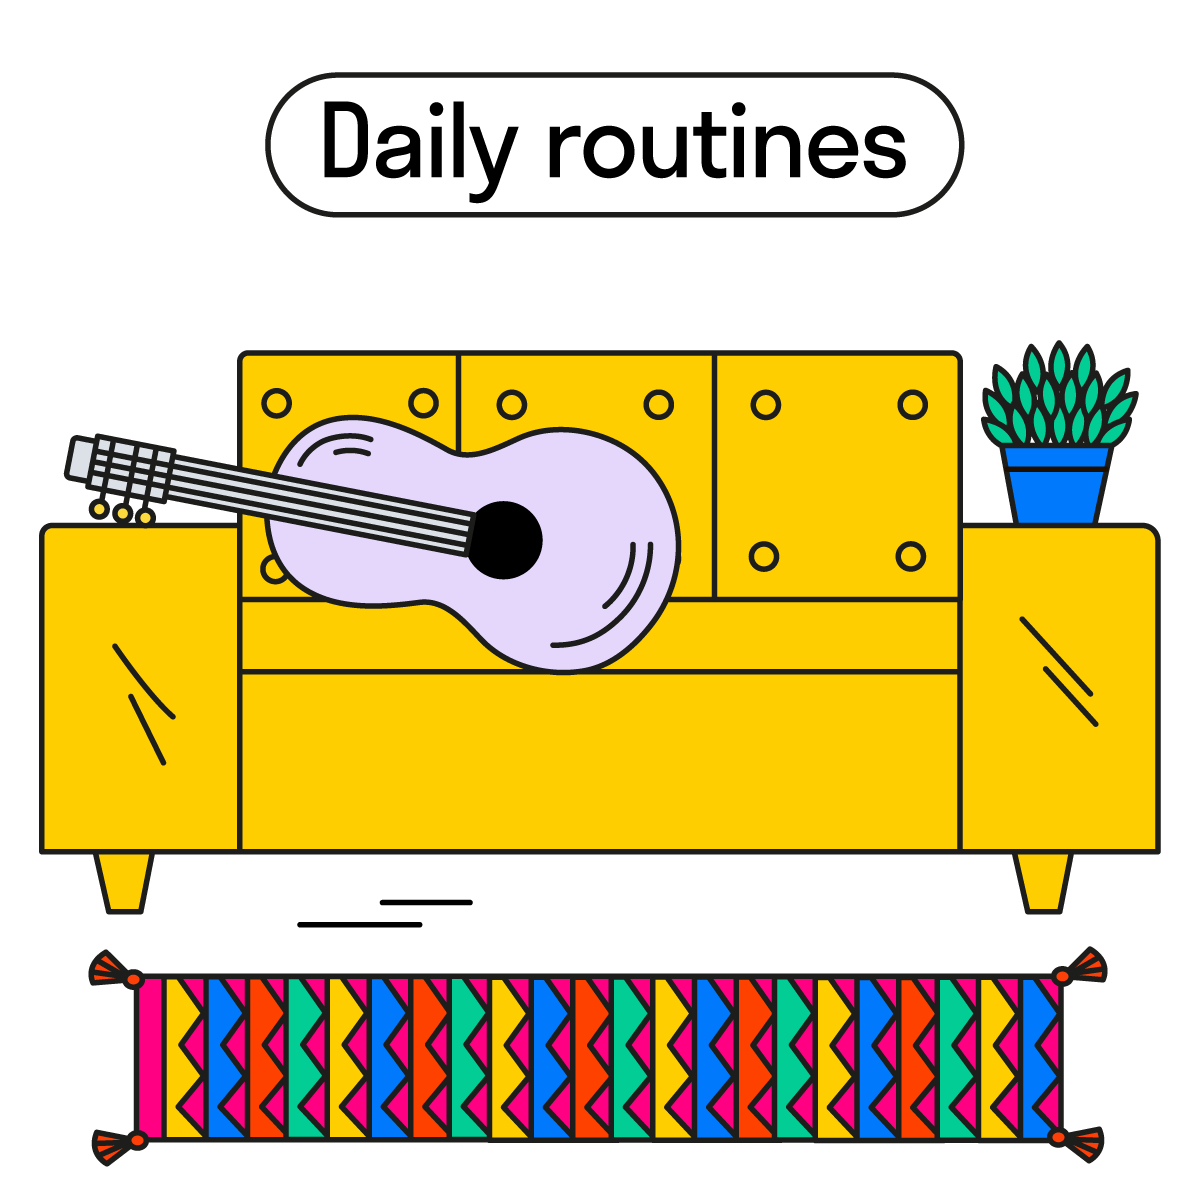 daily routines ig 2